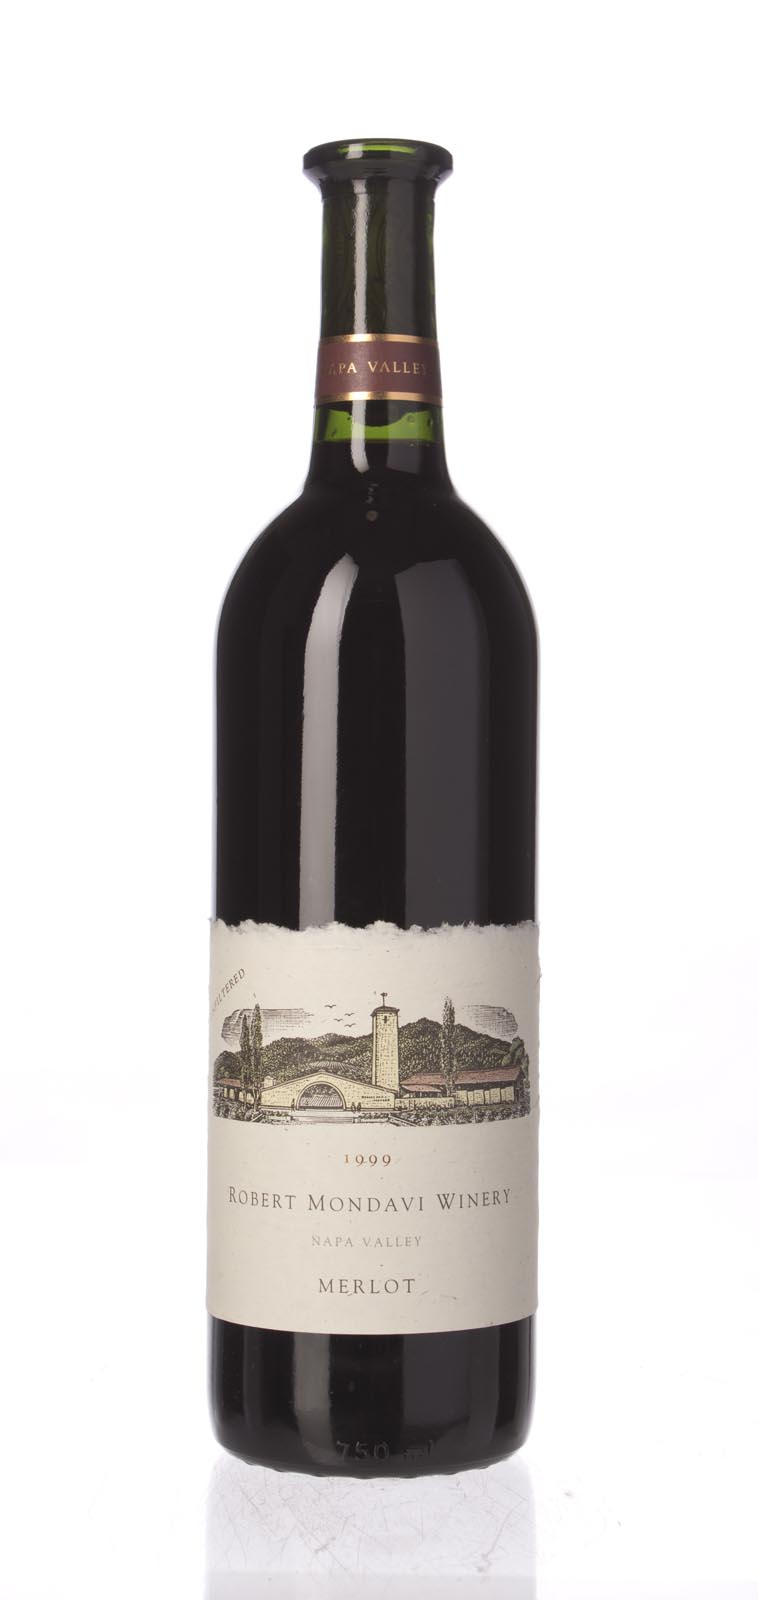 Robert Mondavi Merlot Napa Valley 1999, 750mL () from The BPW - Merchants of rare and fine wines.